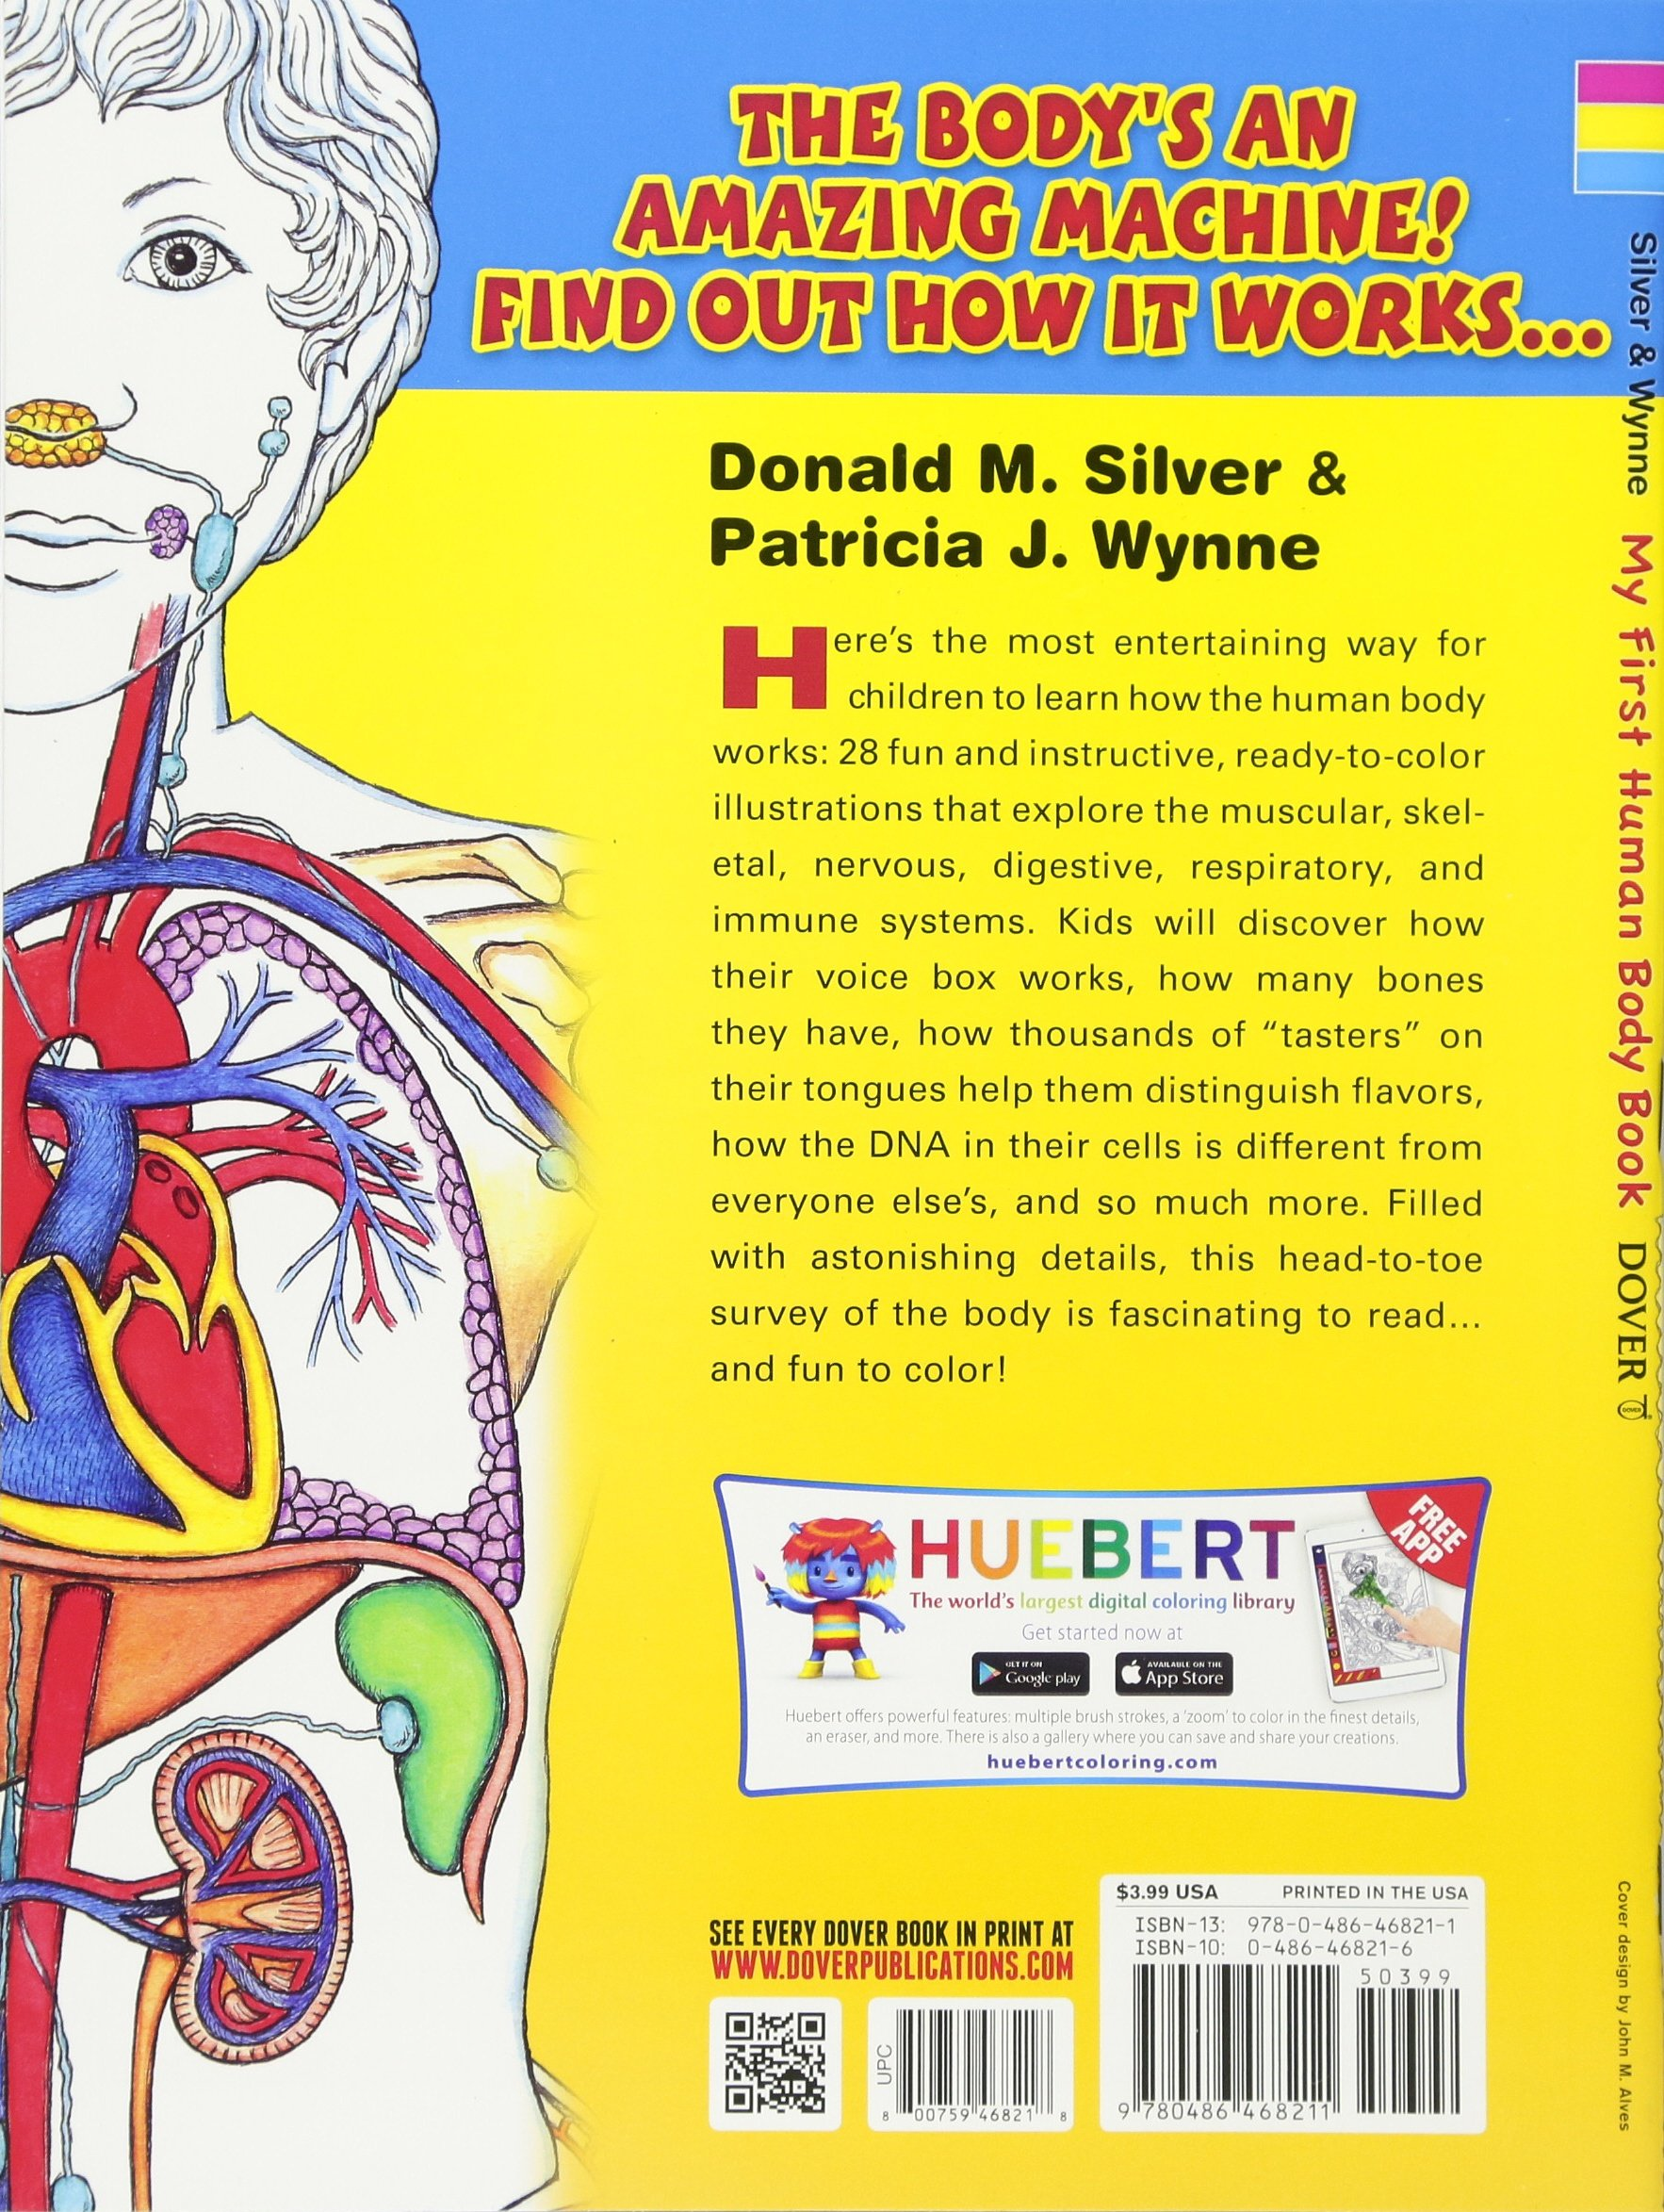 The human brain coloring book diamond - Buy My First Human Body Book Dover Children S Science Books Book Online At Low Prices In India My First Human Body Book Dover Children S Science Books